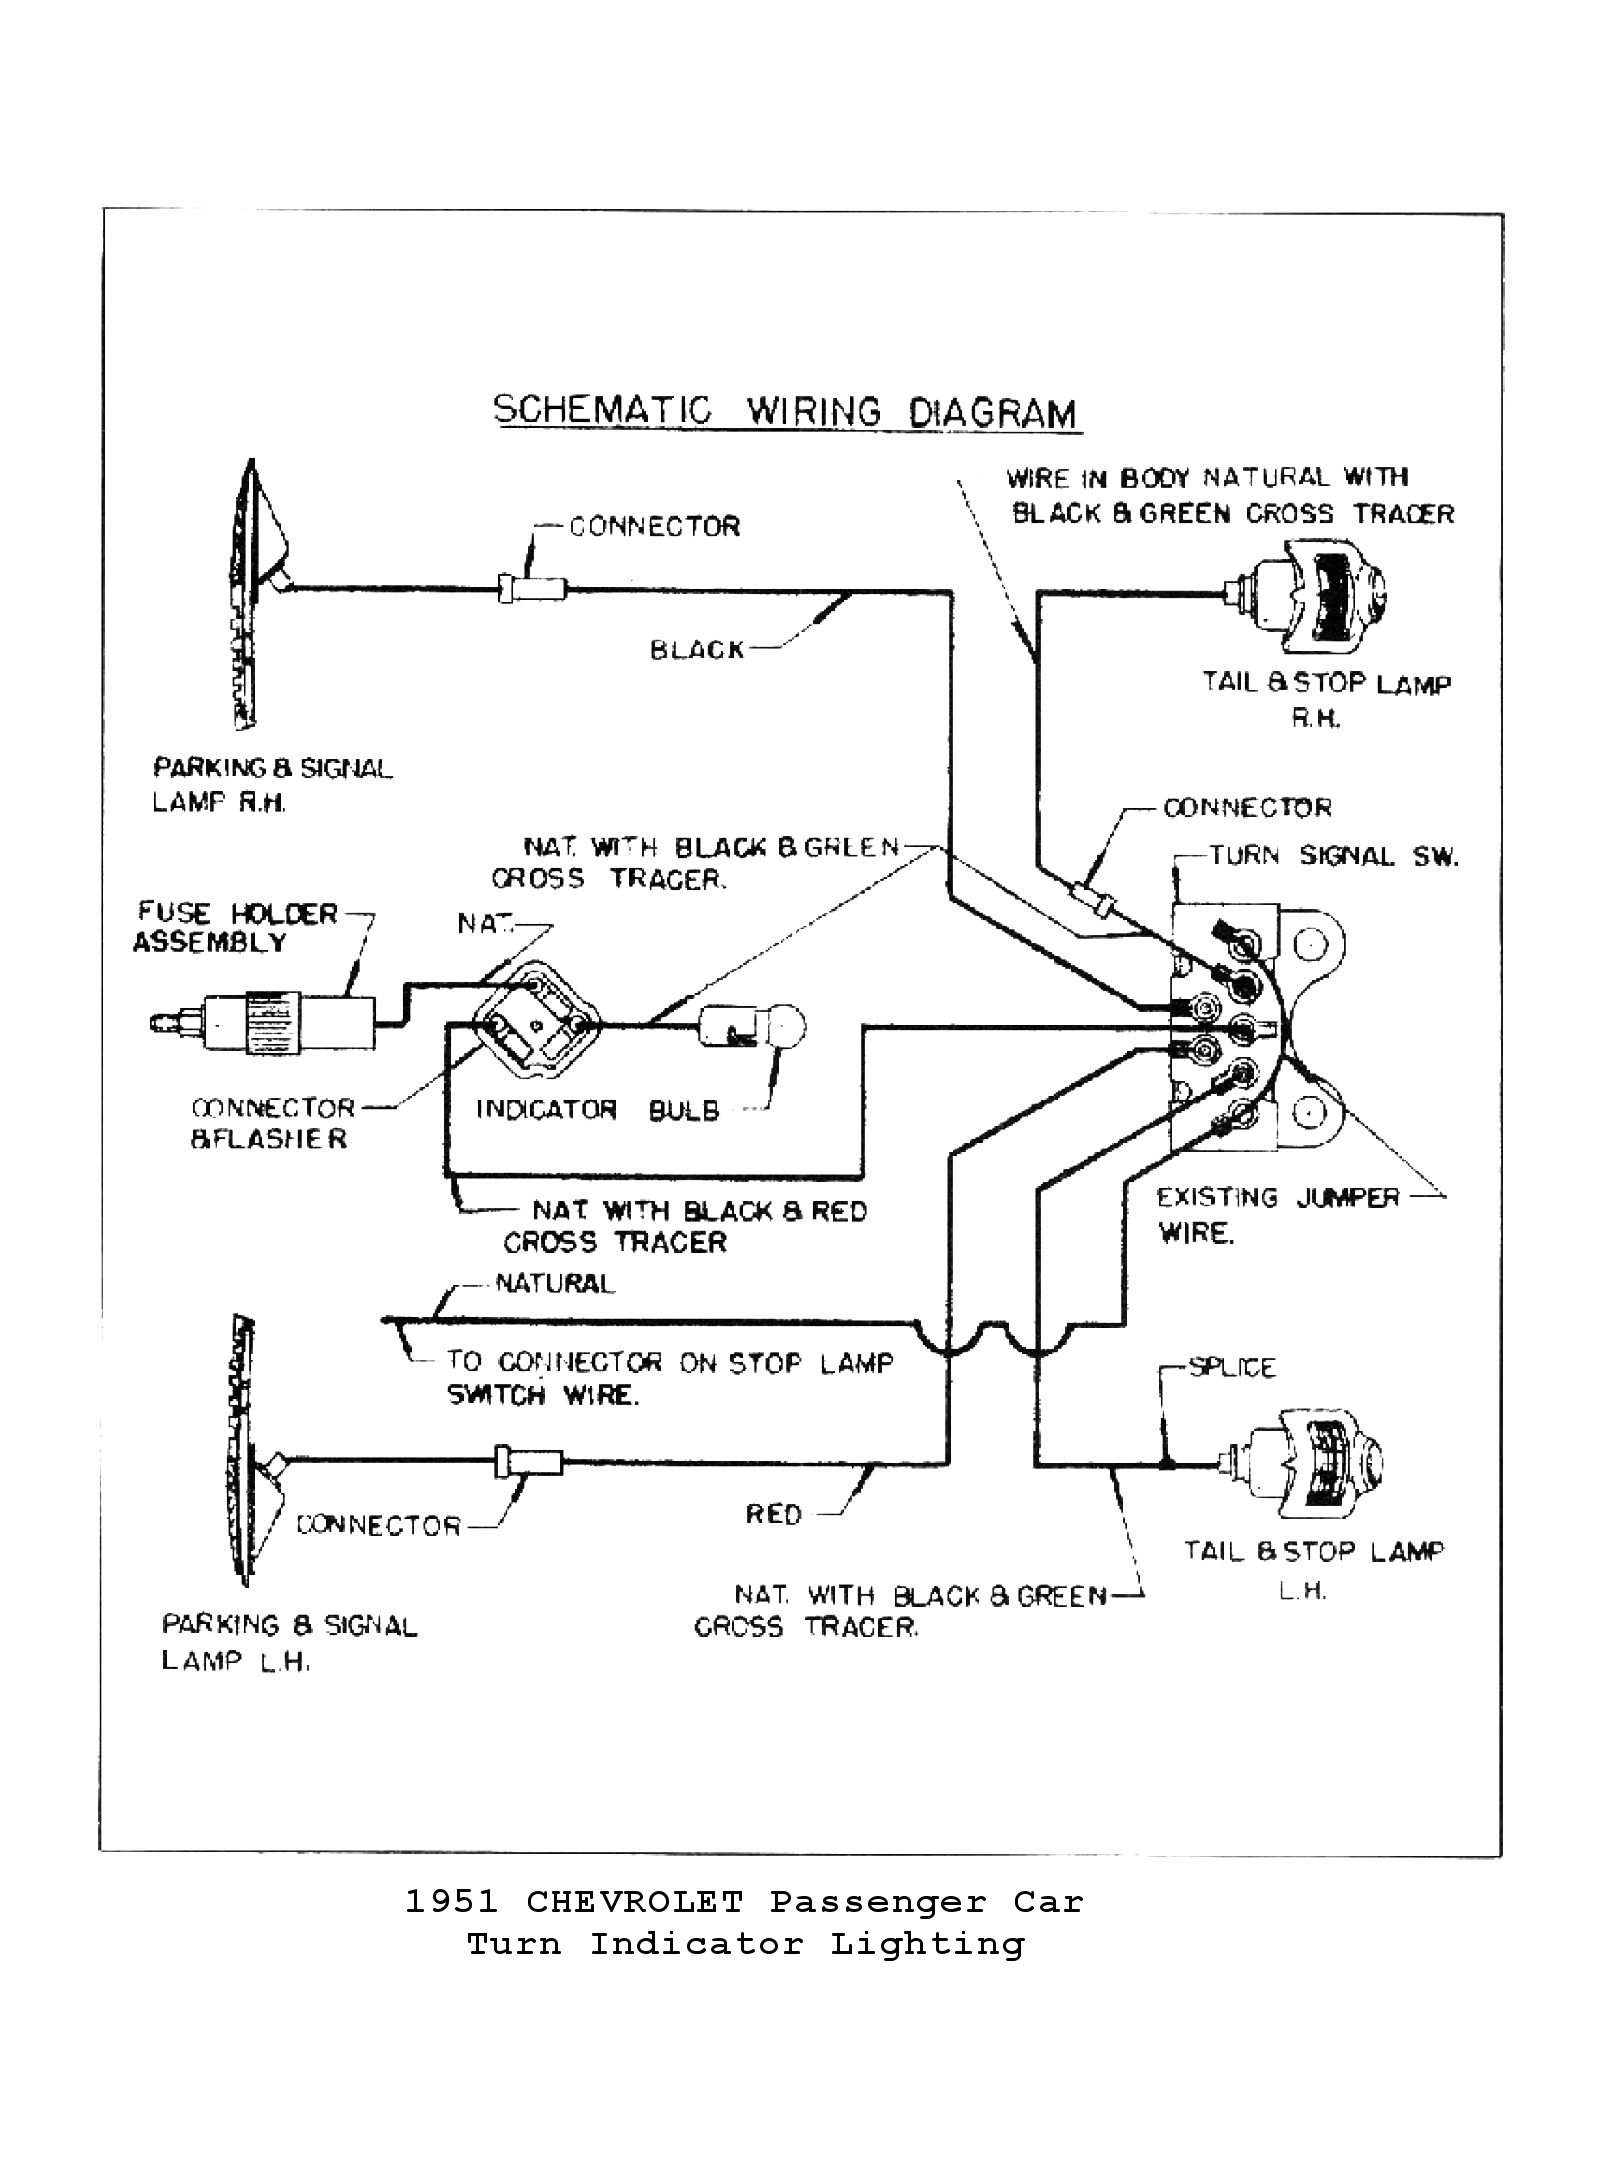 Wiring Diagrams 1955 Chevrolet Bel Air Vintage Chevrolet ... on spotlight lighting, auto relay diagram, light relay wire diagram, motorcycle spotlight relay switch diagram, battery diagram,